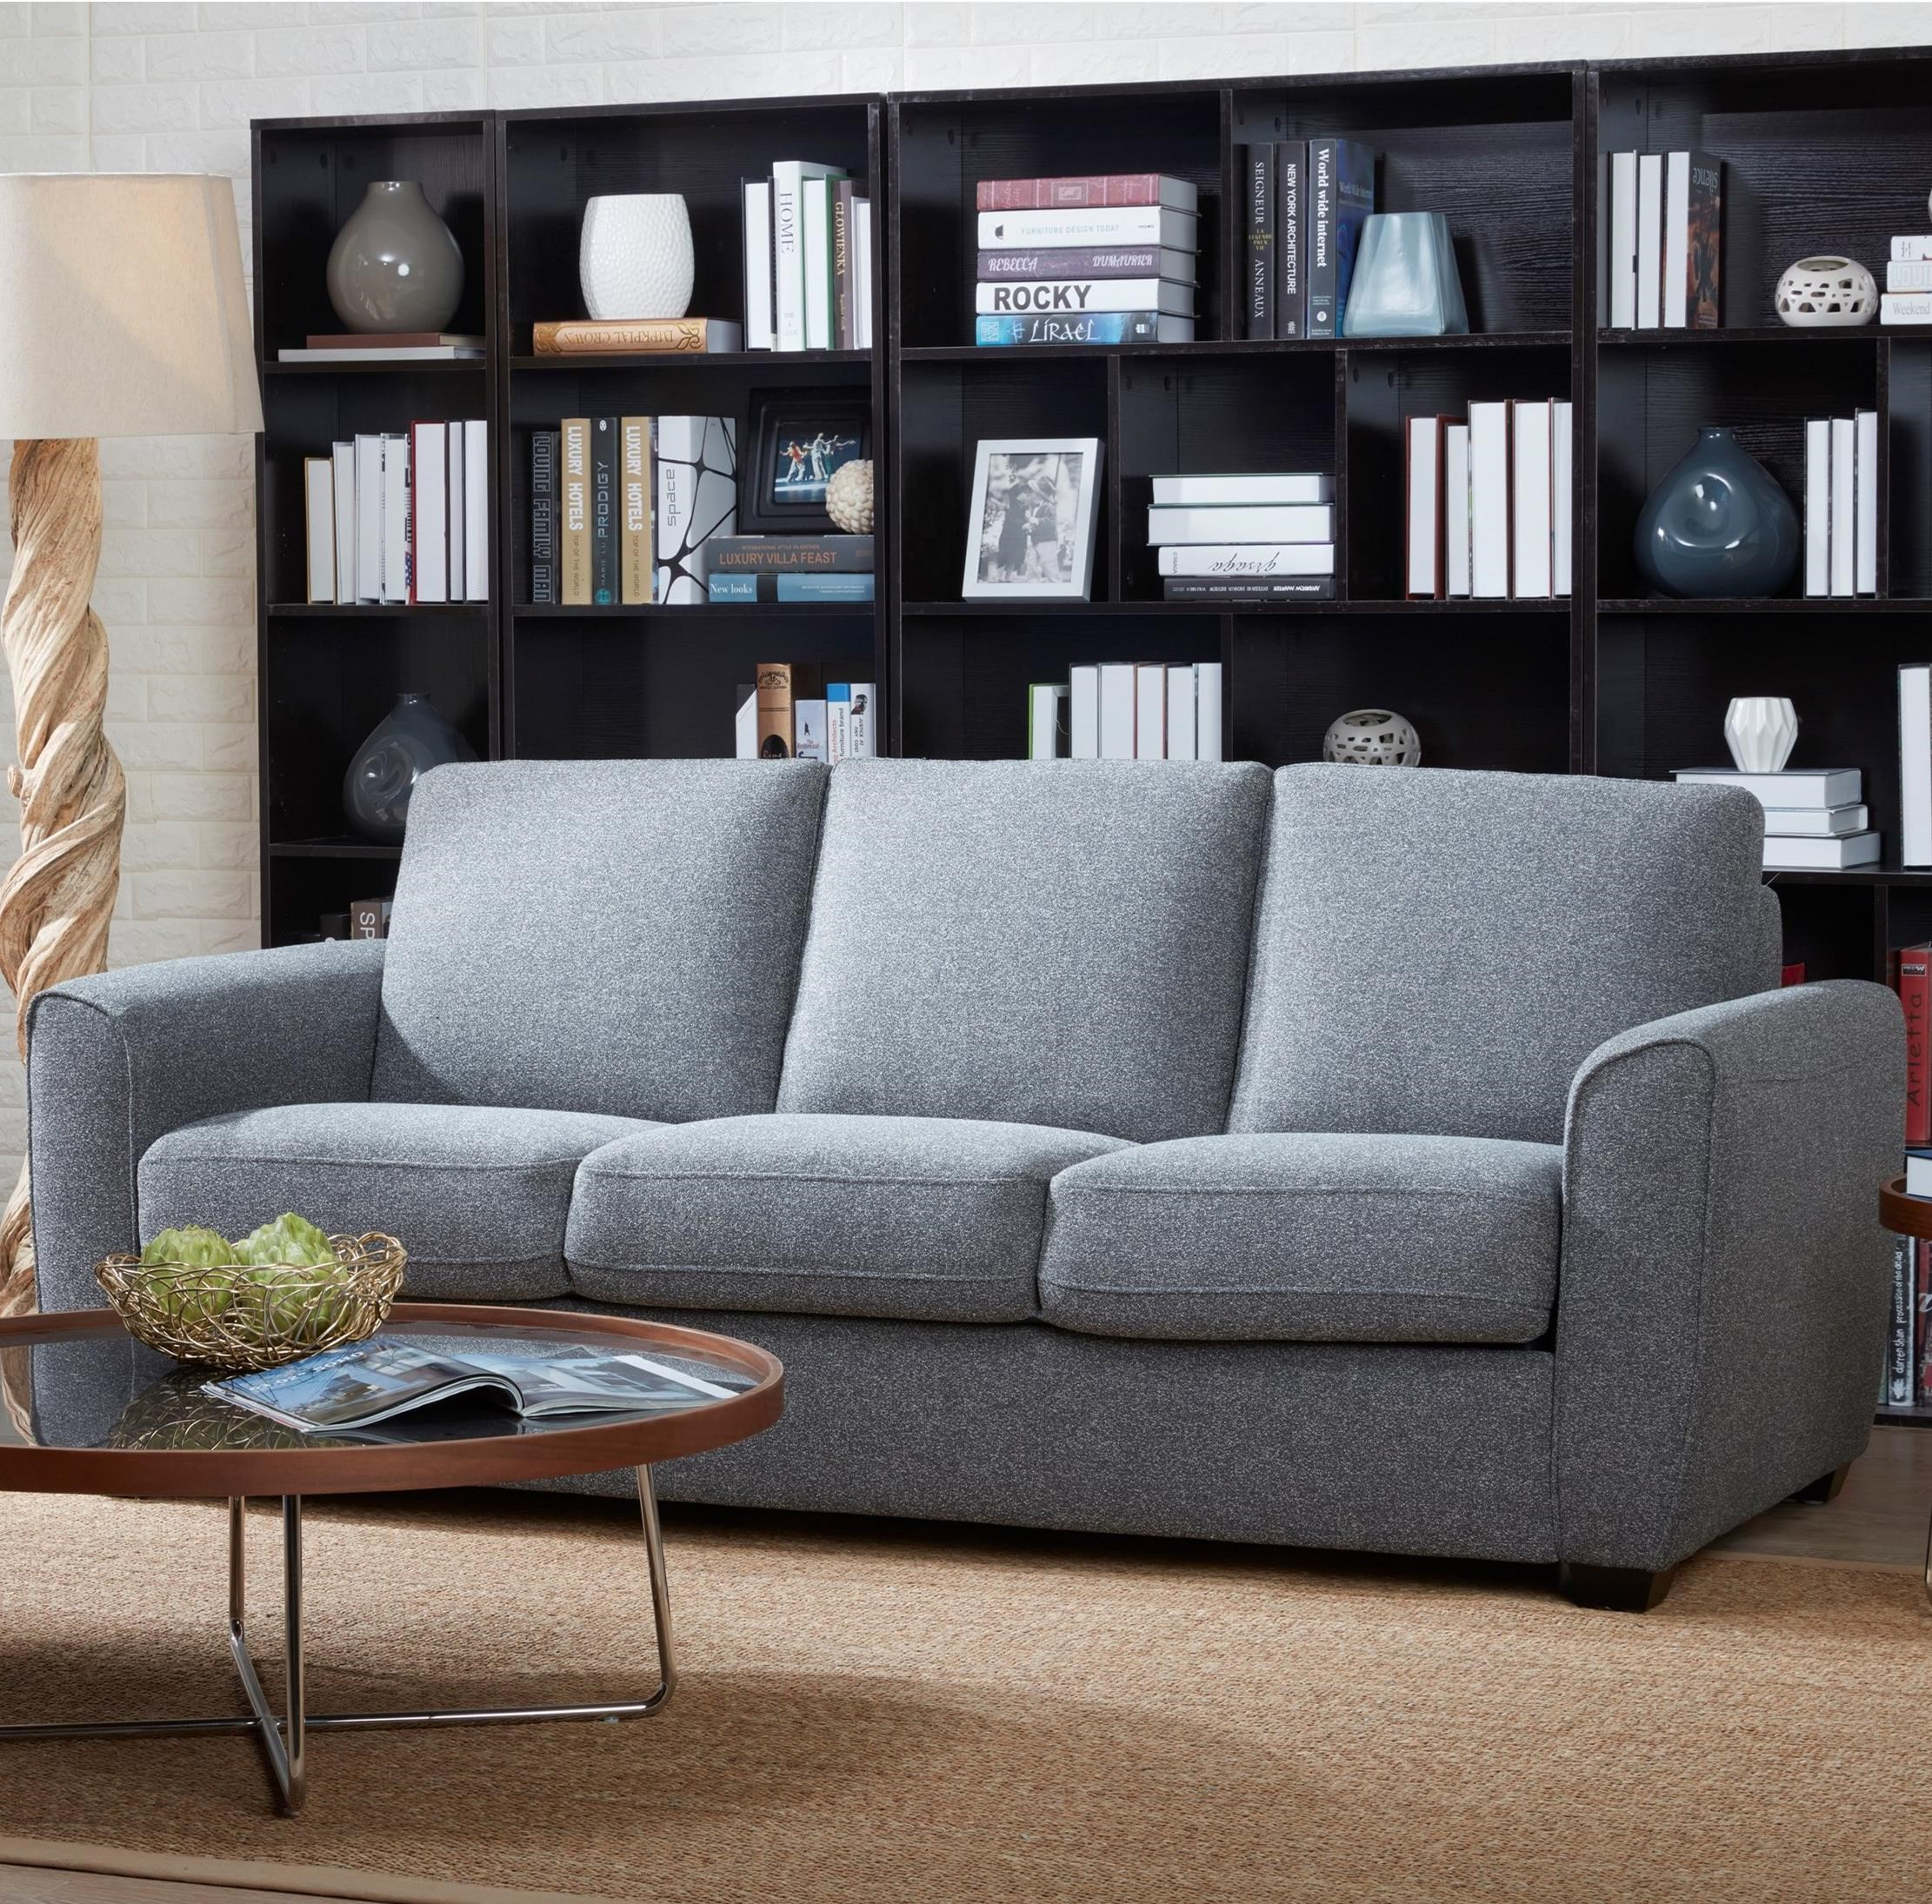 Fancy Kuka Home Furniture Collection - Best Interior Design Ideas ...